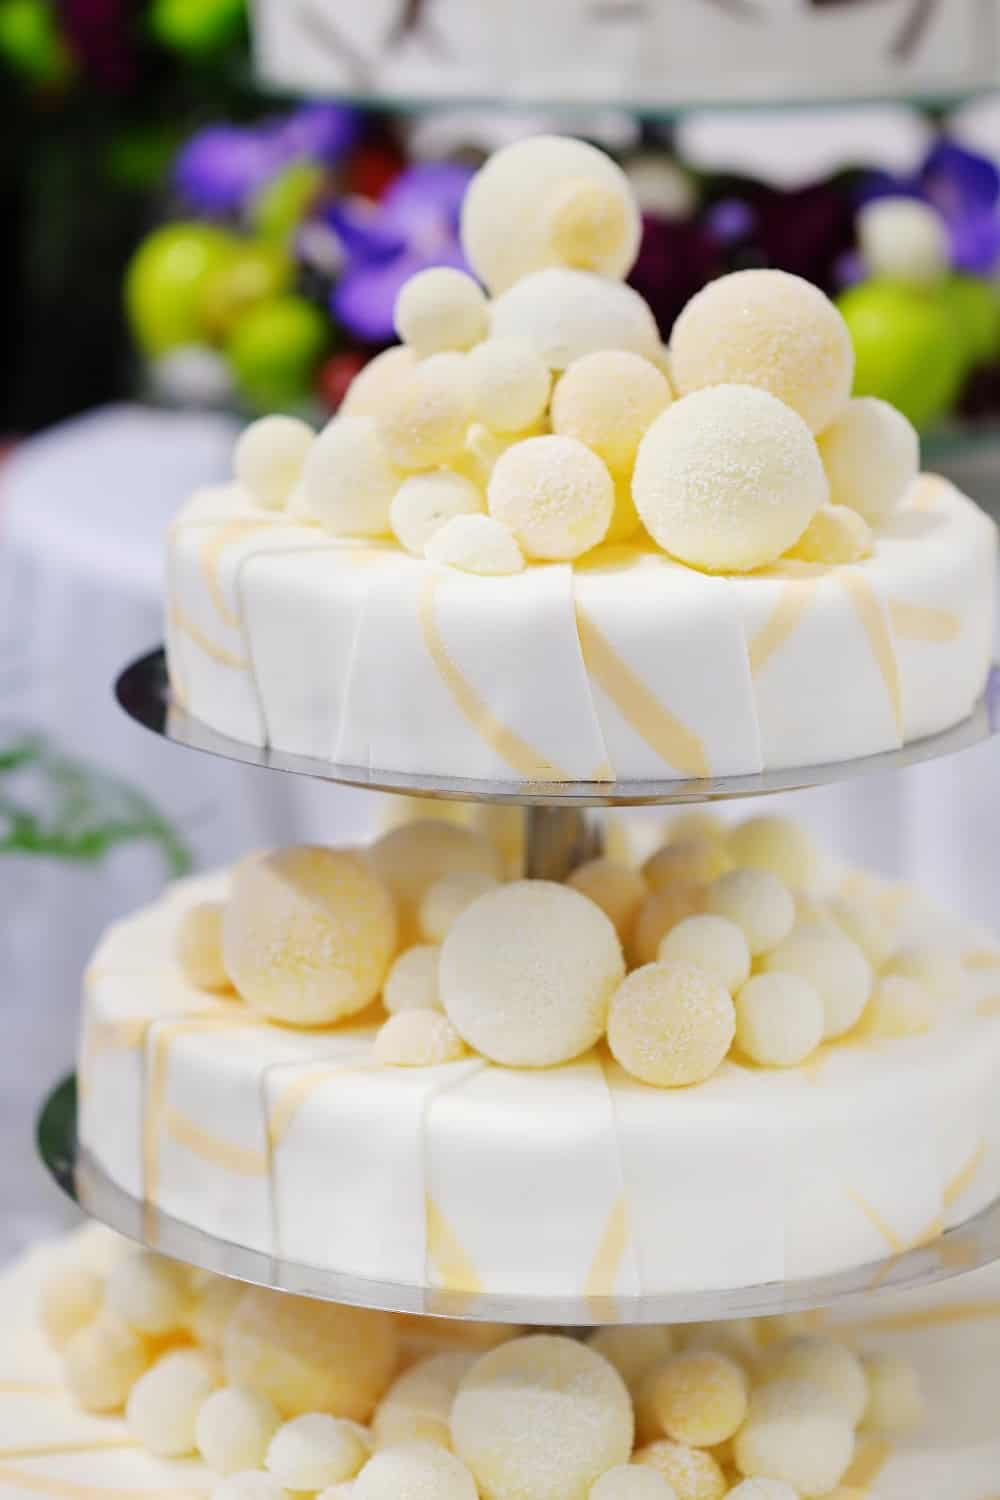 White and yellow wedding cake with delicate yellow sugar balls